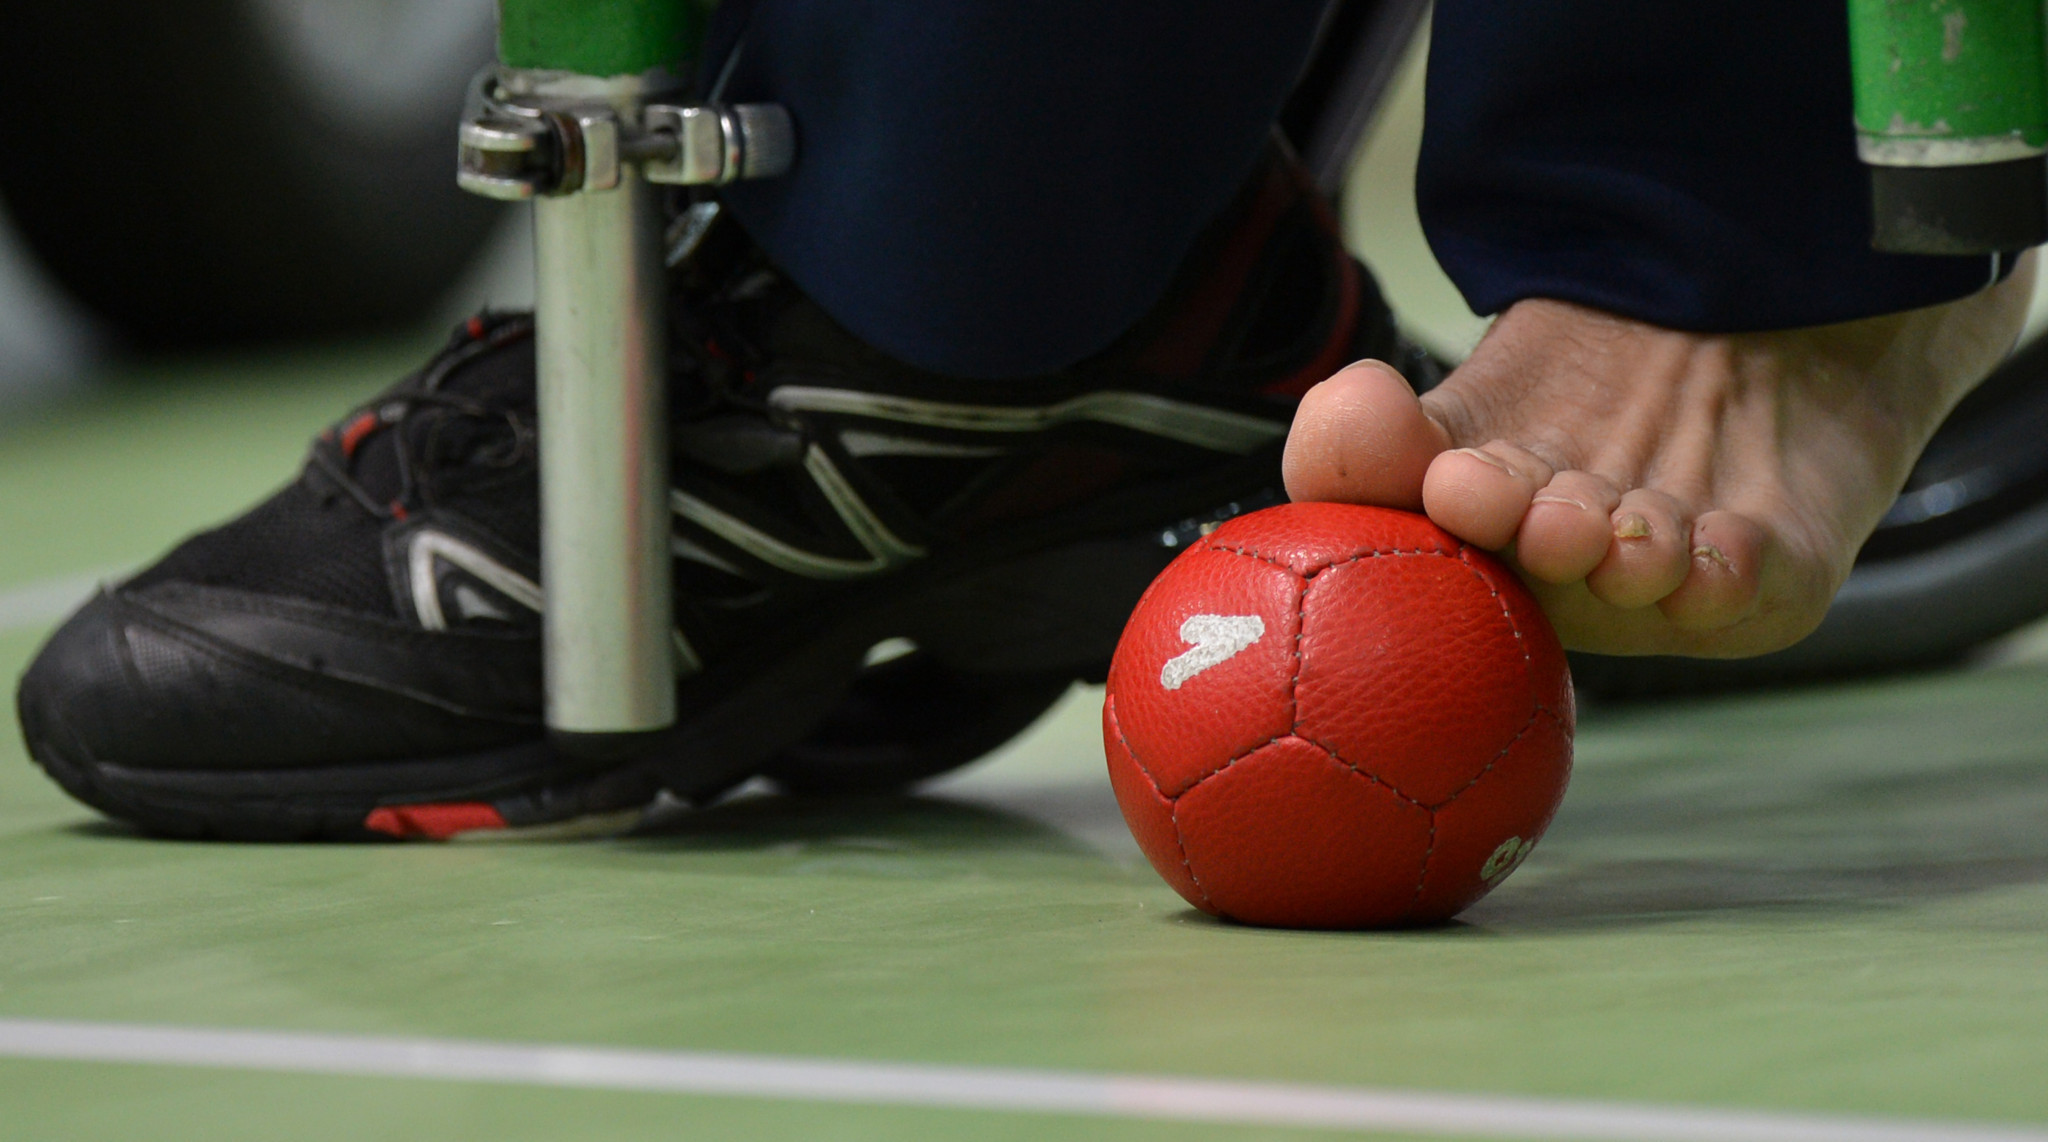 Argentina boccia squad win APC August award after Lima 2019 gold